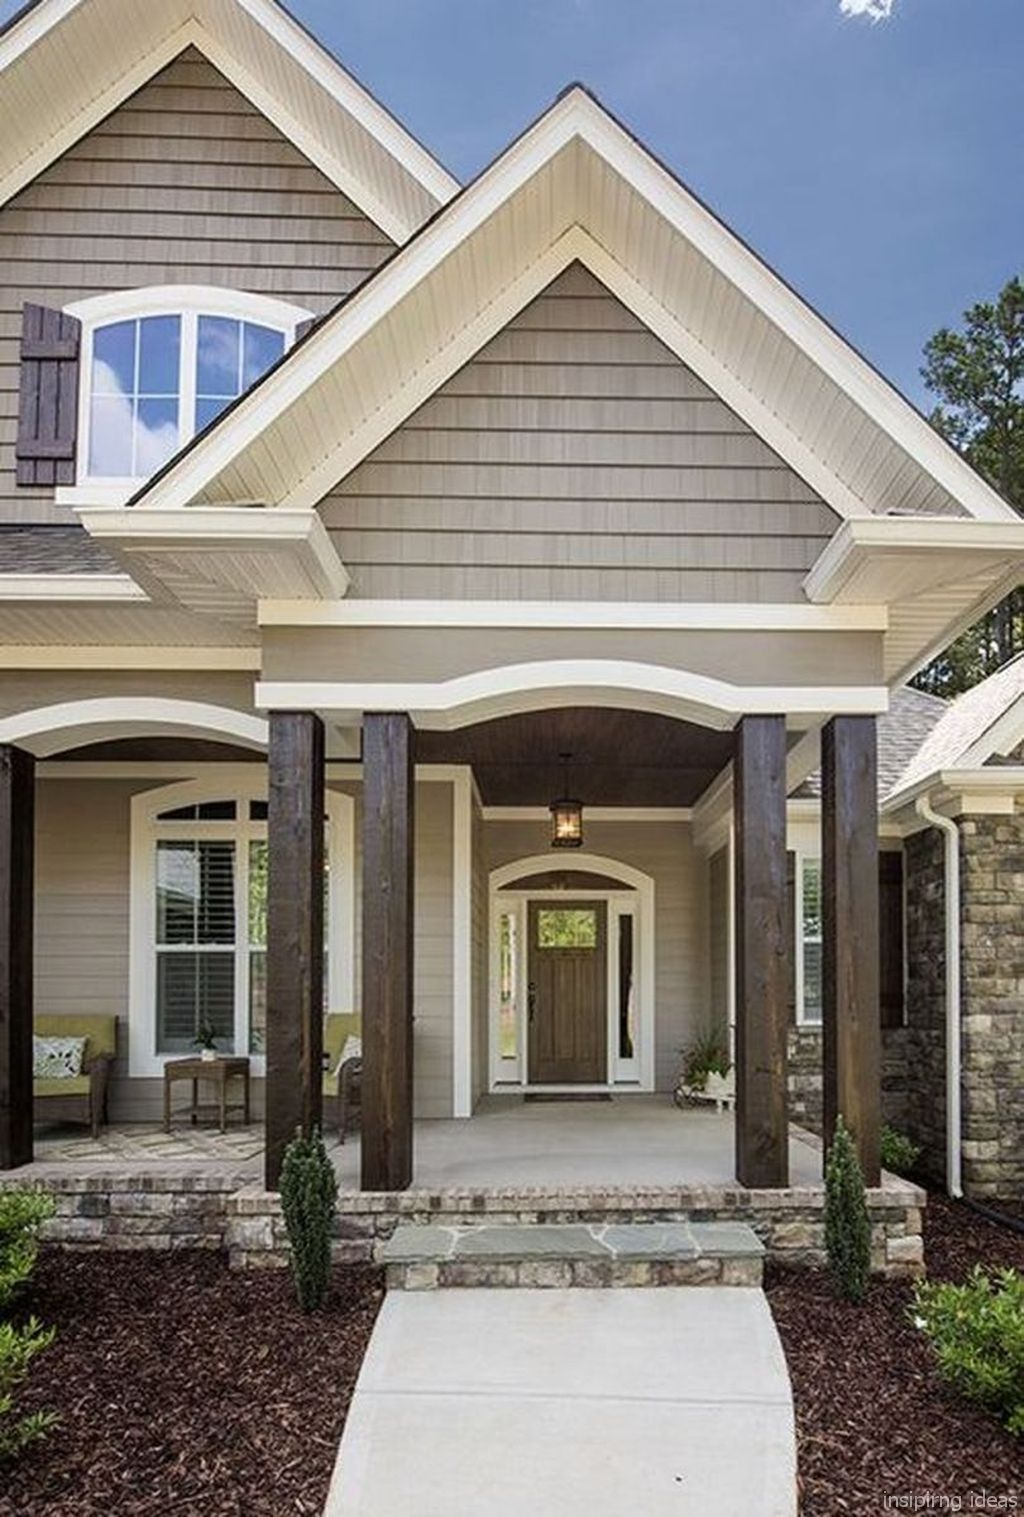 27 beautiful exterior paint ideas if you don t will need on exterior home paint ideas pictures id=15190